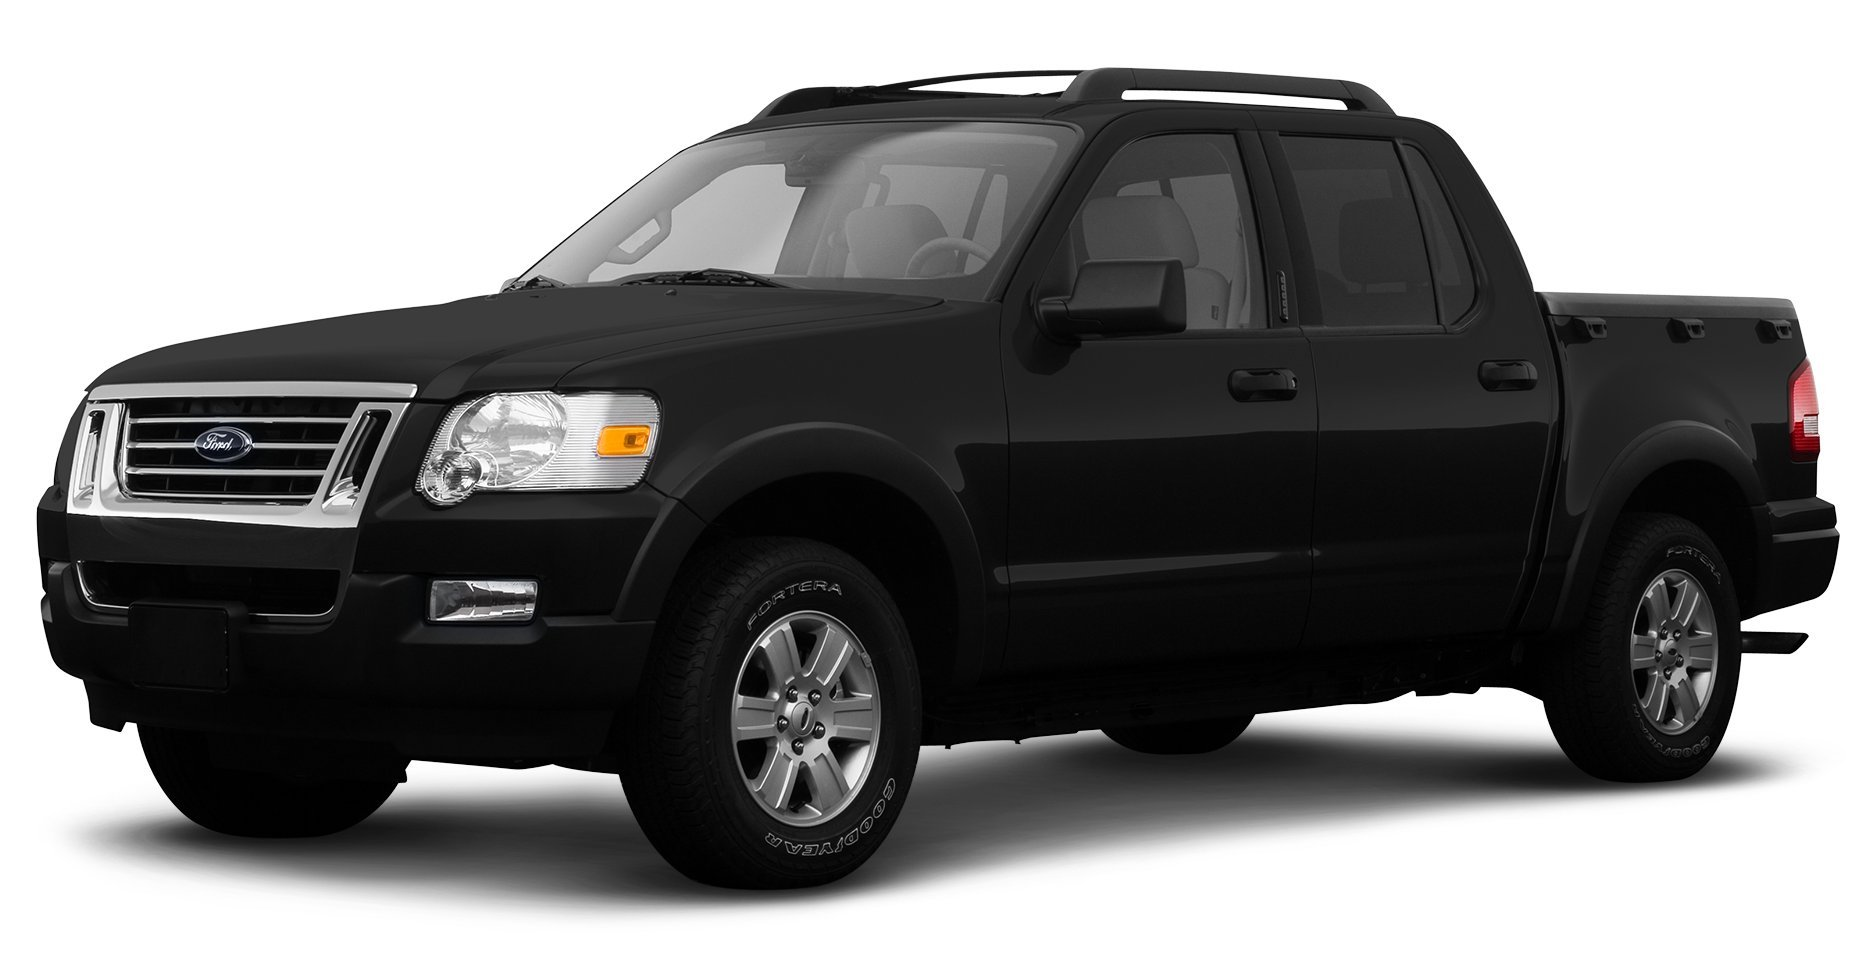 2008 Ford Explorer Reviews Images And Specs Vehicles Power Seat Wiring Diagram Of 1957 Lincoln 4 Way Sport Trac Limited Wheel Drive Door V8